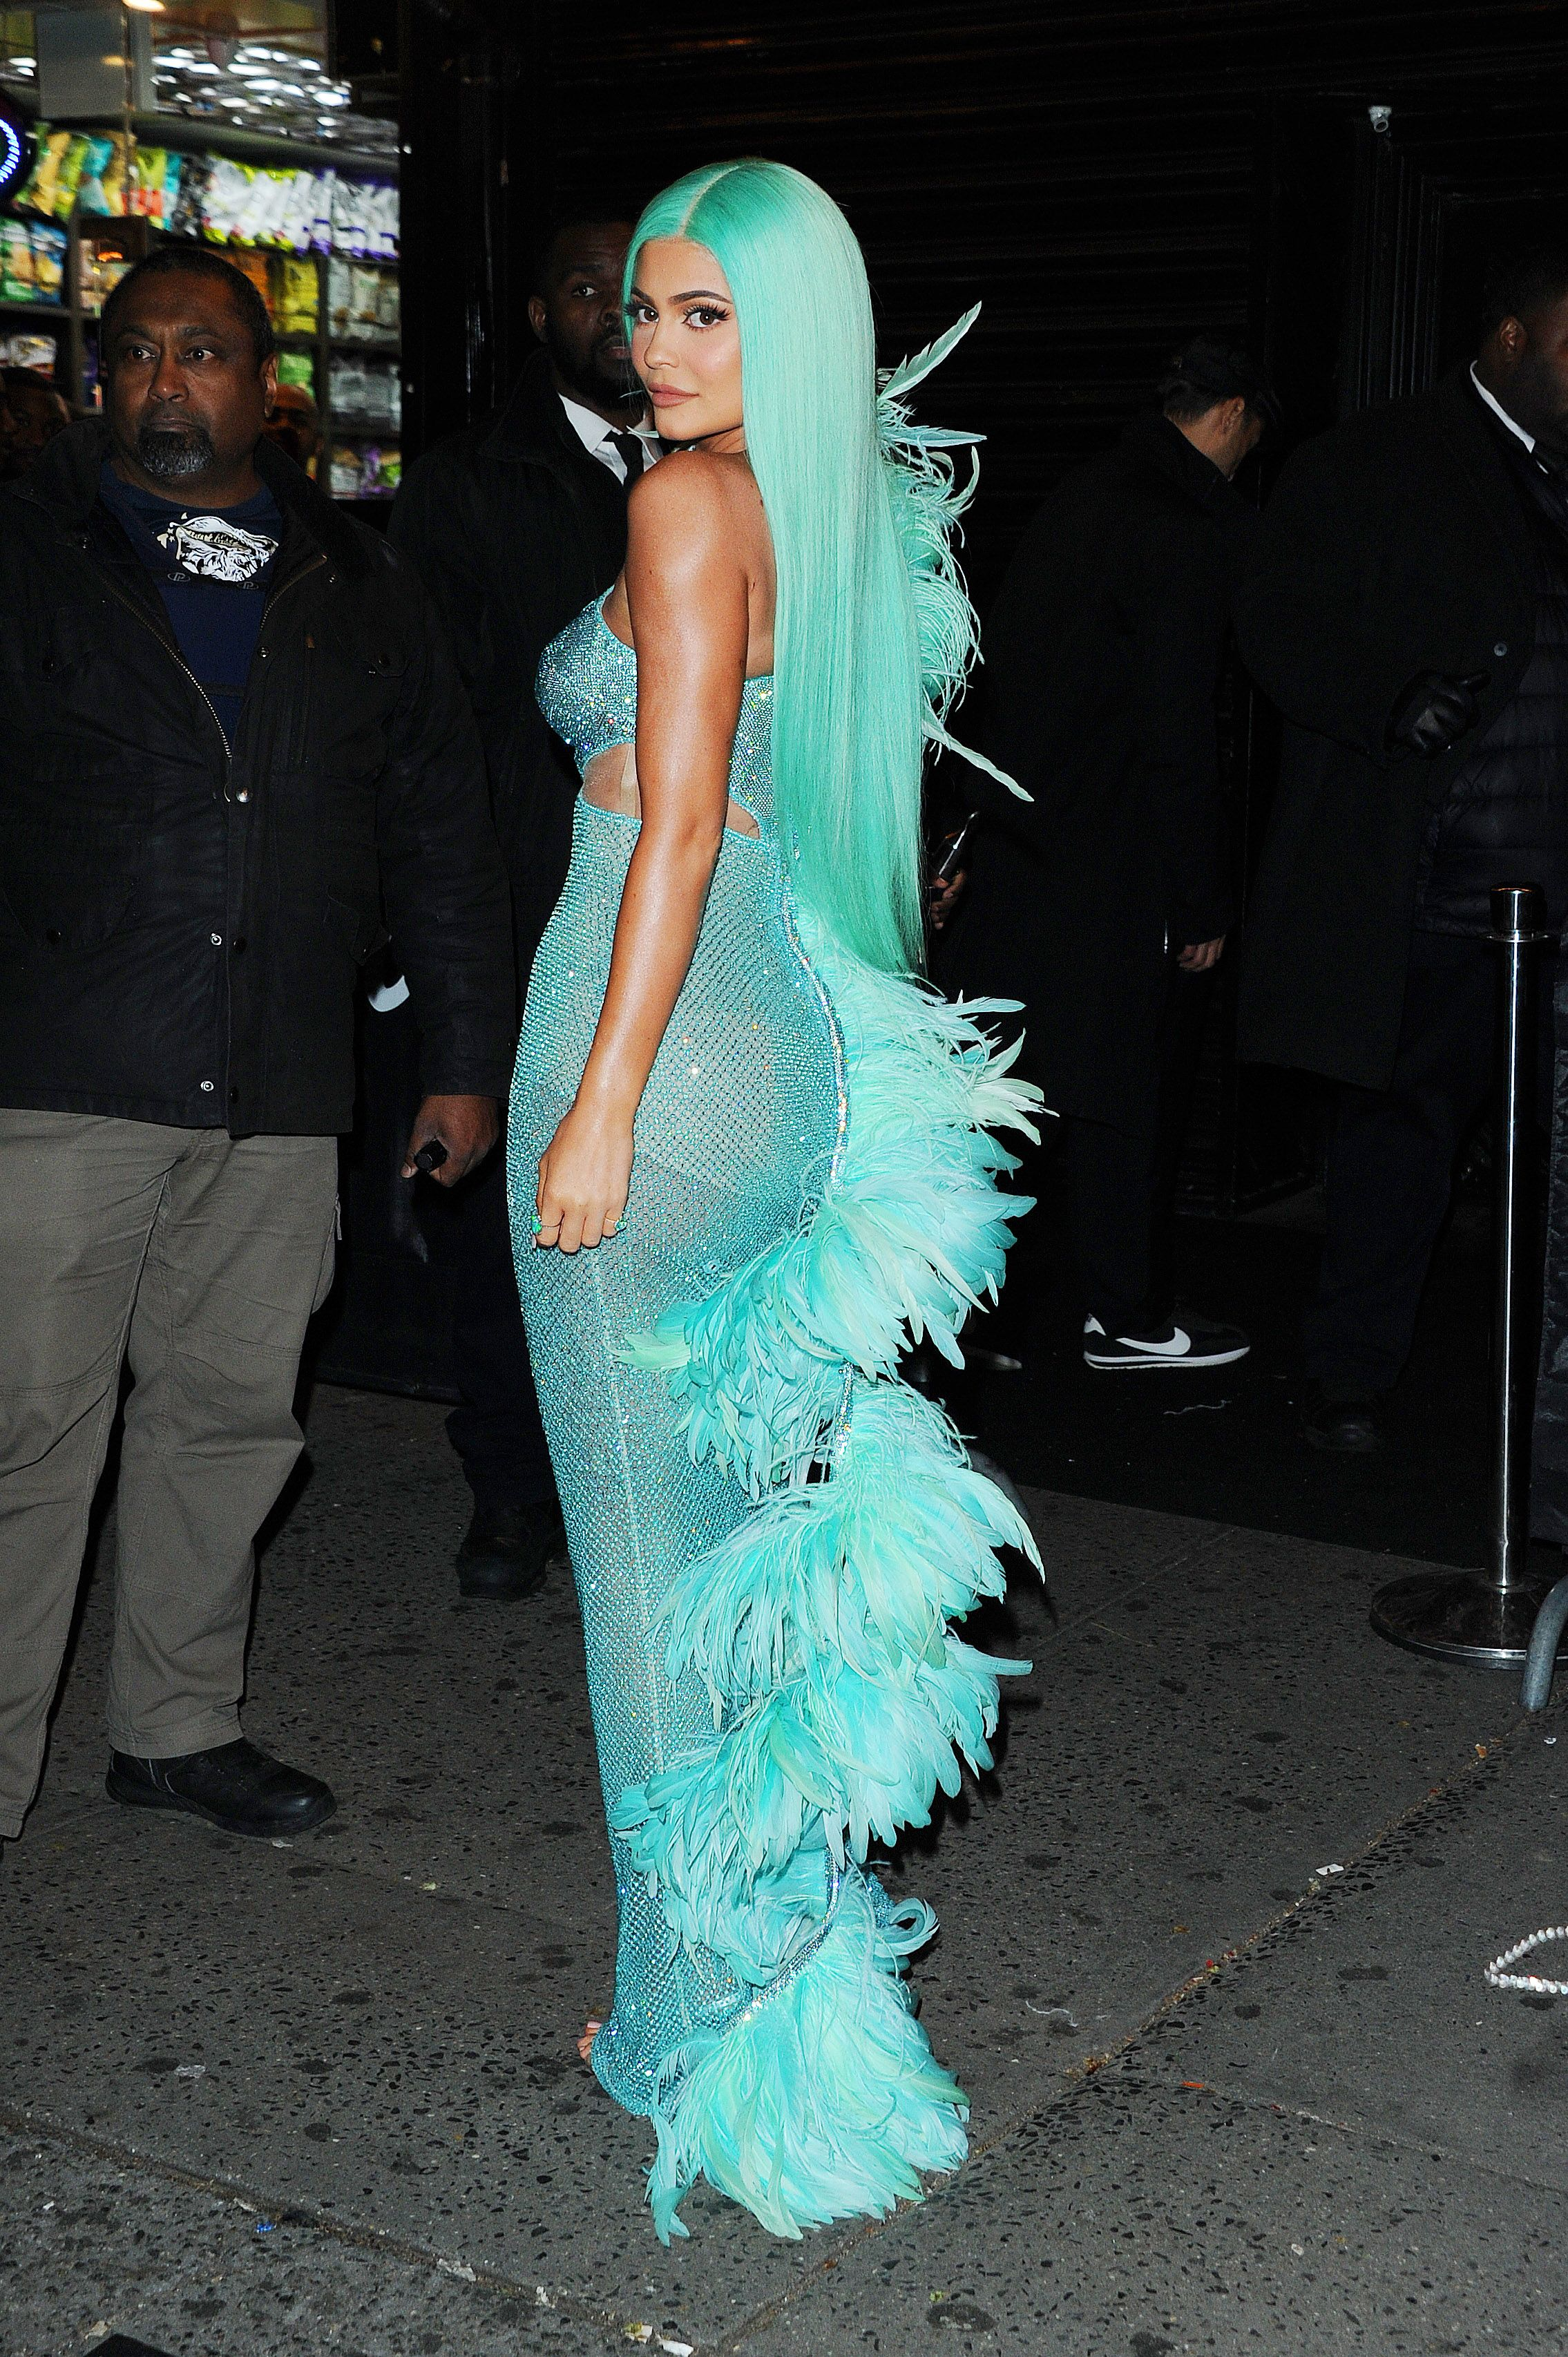 Kylie Jenner Having walked the red carpet in a lavender flourish, Kylie swapped out the purple for a turquoise sequin dress covered in feathers, plus a matching wig to complete the co-ordinated colors.